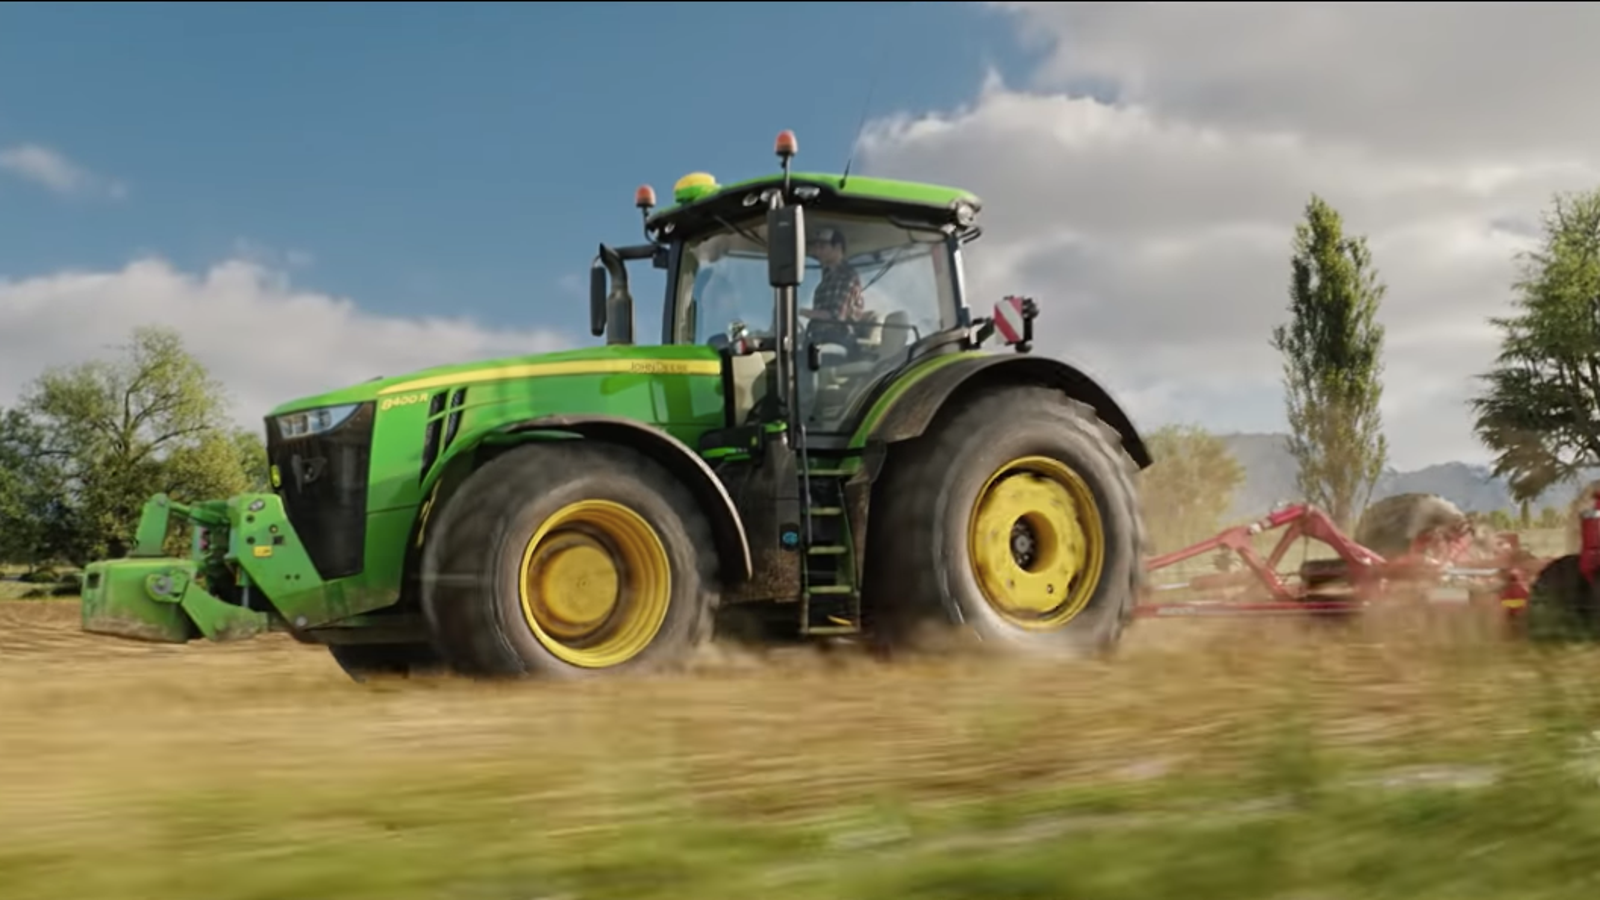 QnA VBage Over $280,000 in Prize Money Takes Tractor Driving and Farming Simulator to a New Level